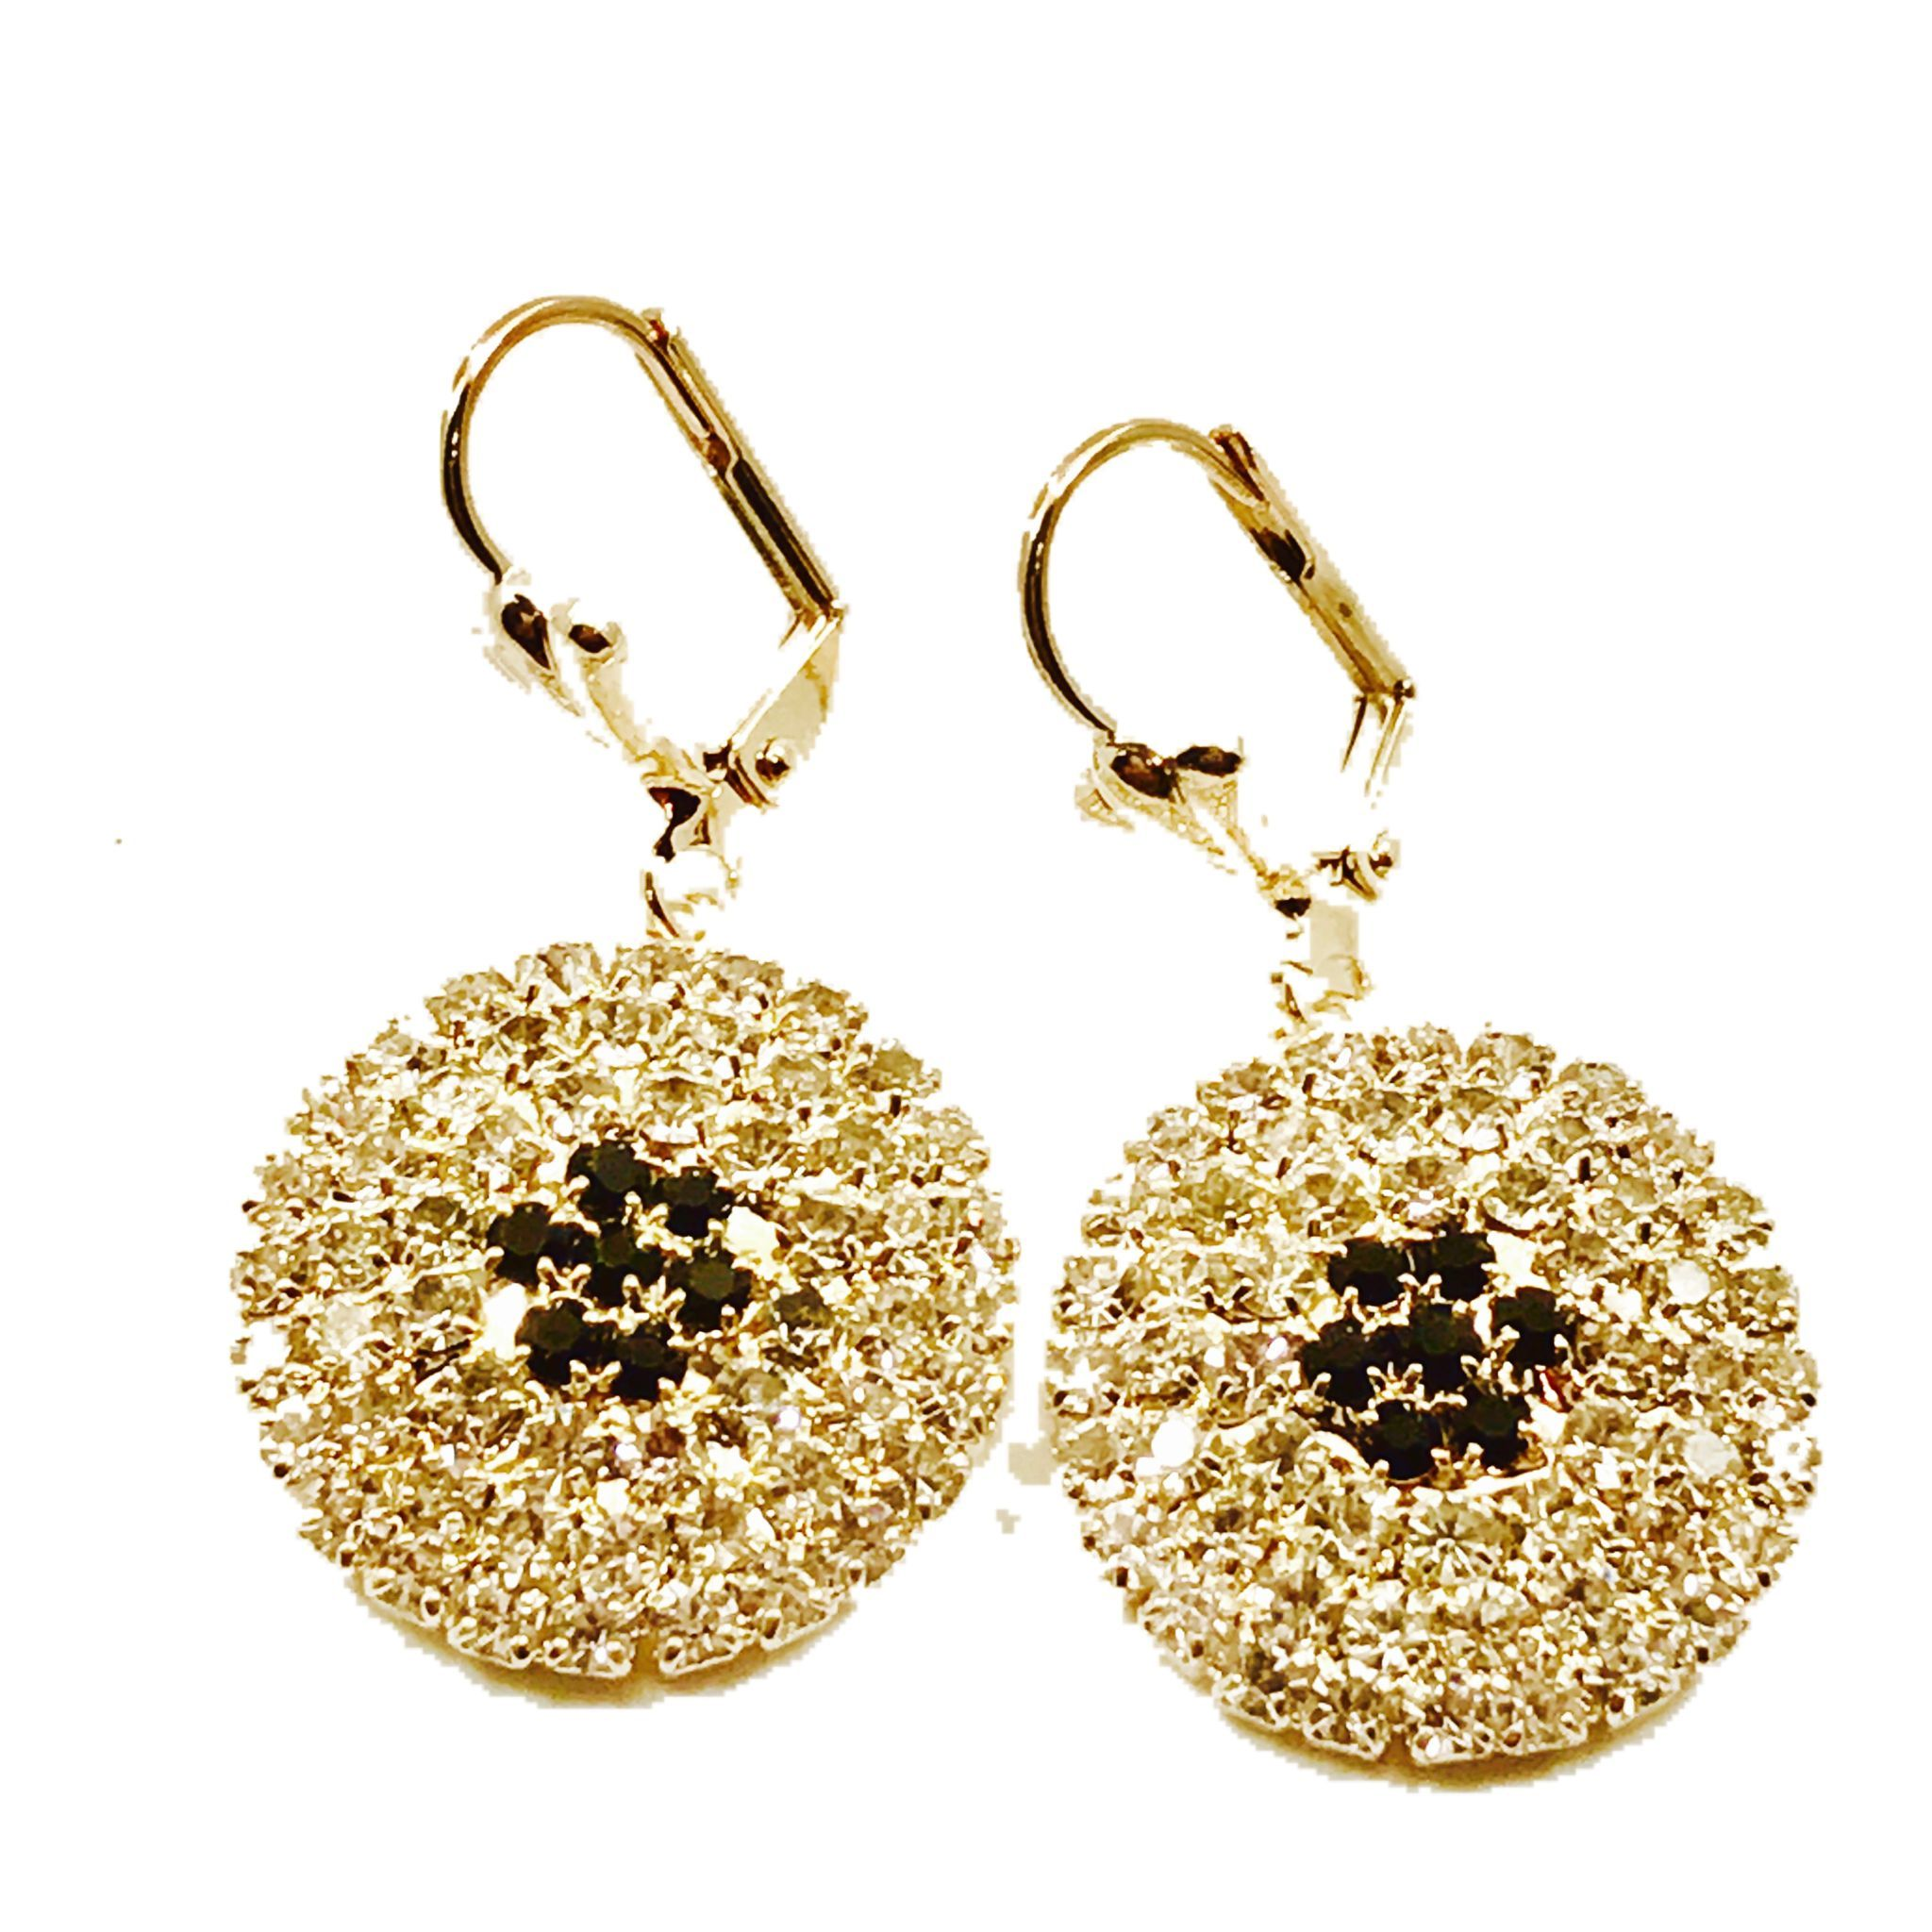 products earring hoop earrings comp plated exquisite for gold shape bali asmitta women kaju